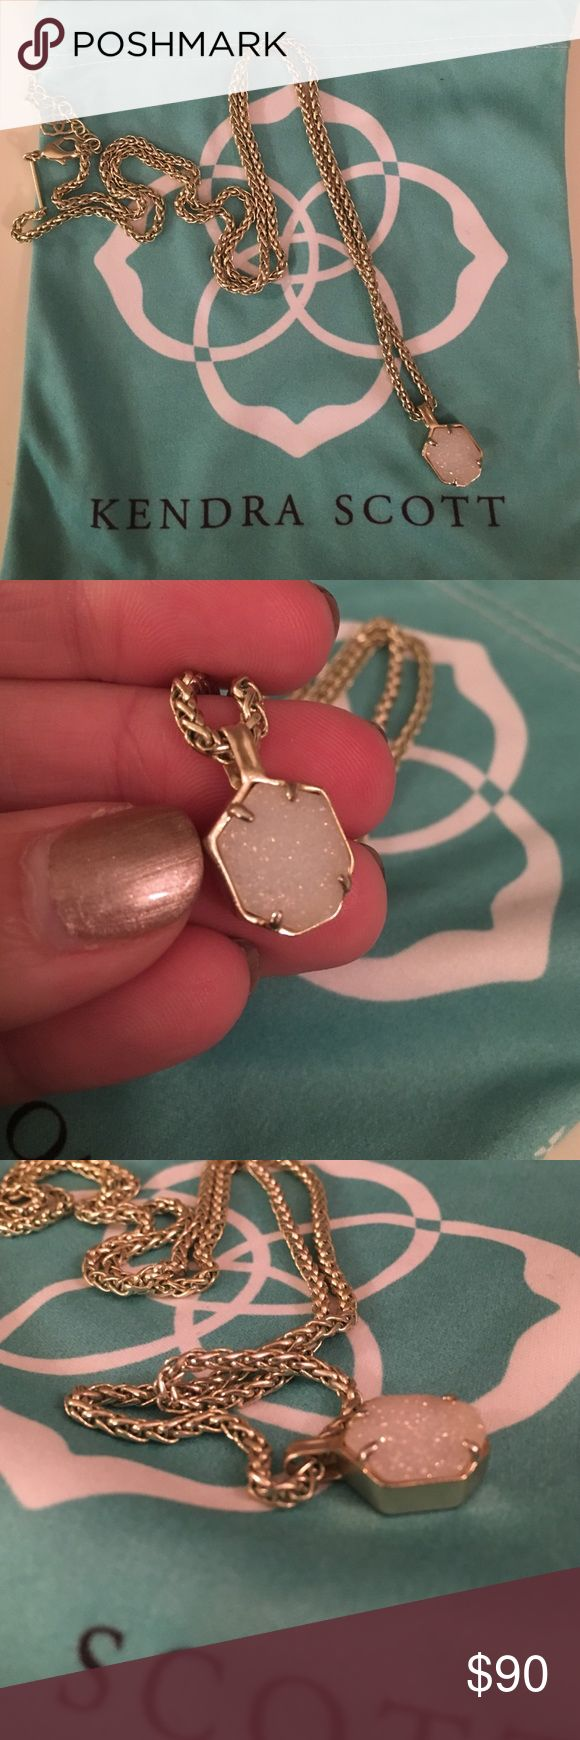 Kendra Scott Oliver Necklace Iridescent druzy and gold Oliver pendant necklace. Worn twice and in mint condition. Perfect for layering! Kendra Scott Jewelry Necklaces